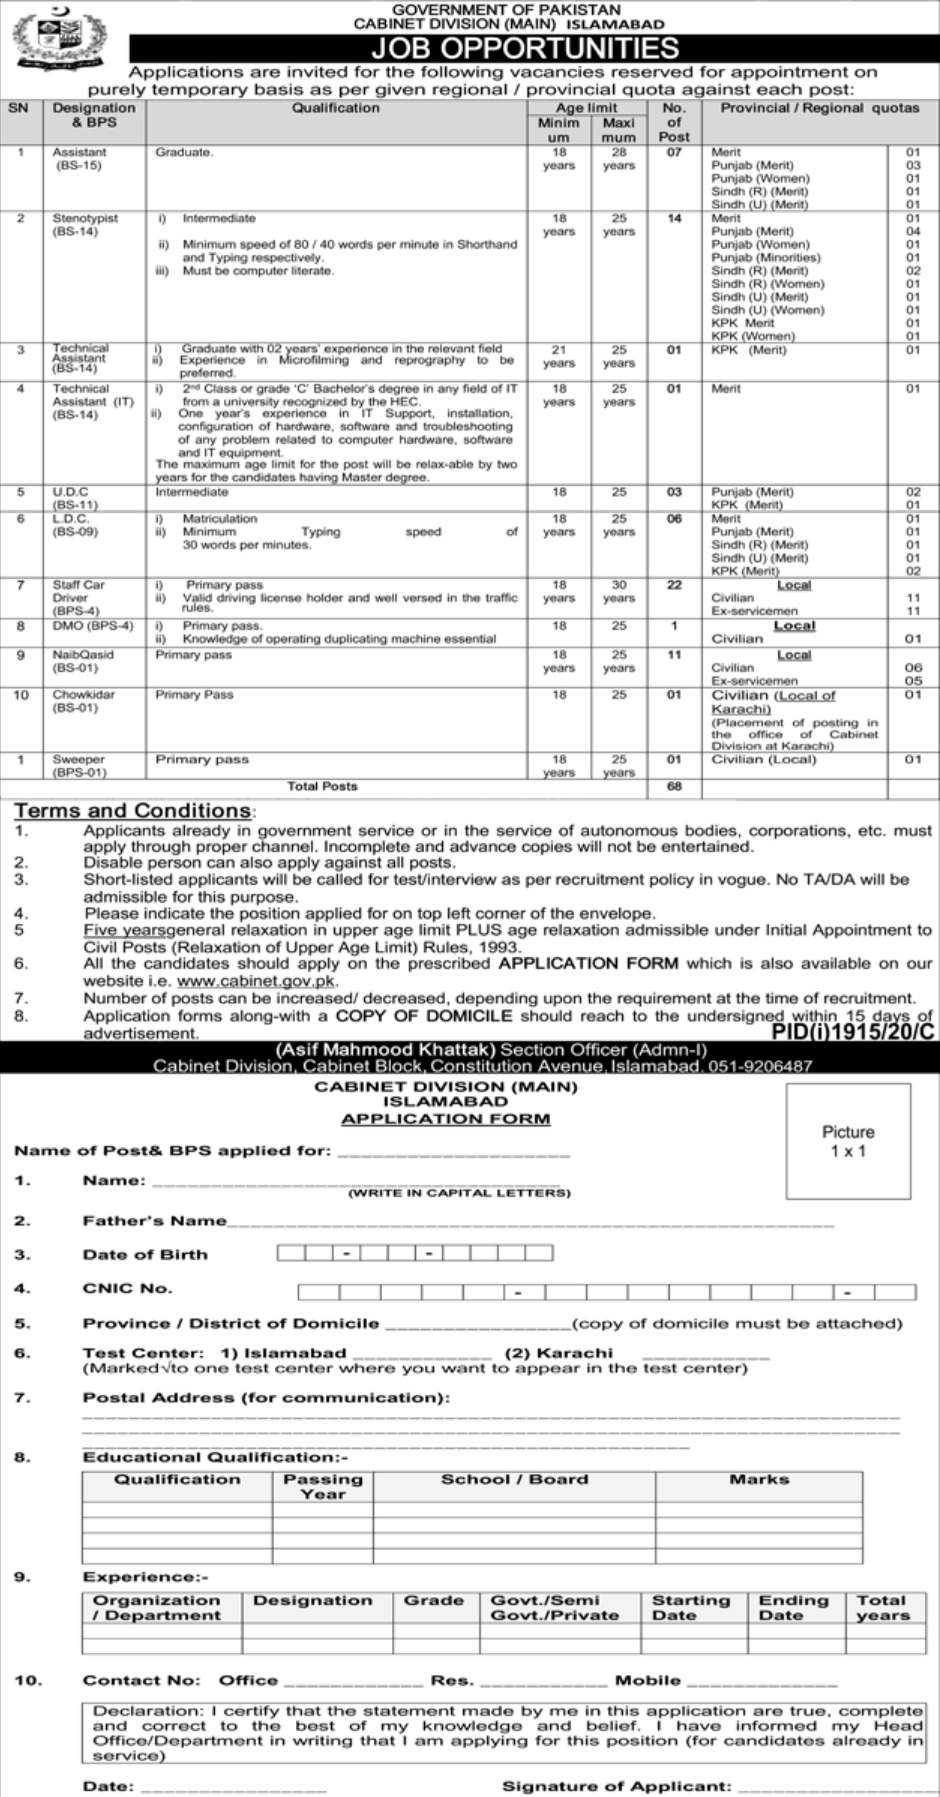 Cabinet Division Government of Pakistan Jobs October 2020